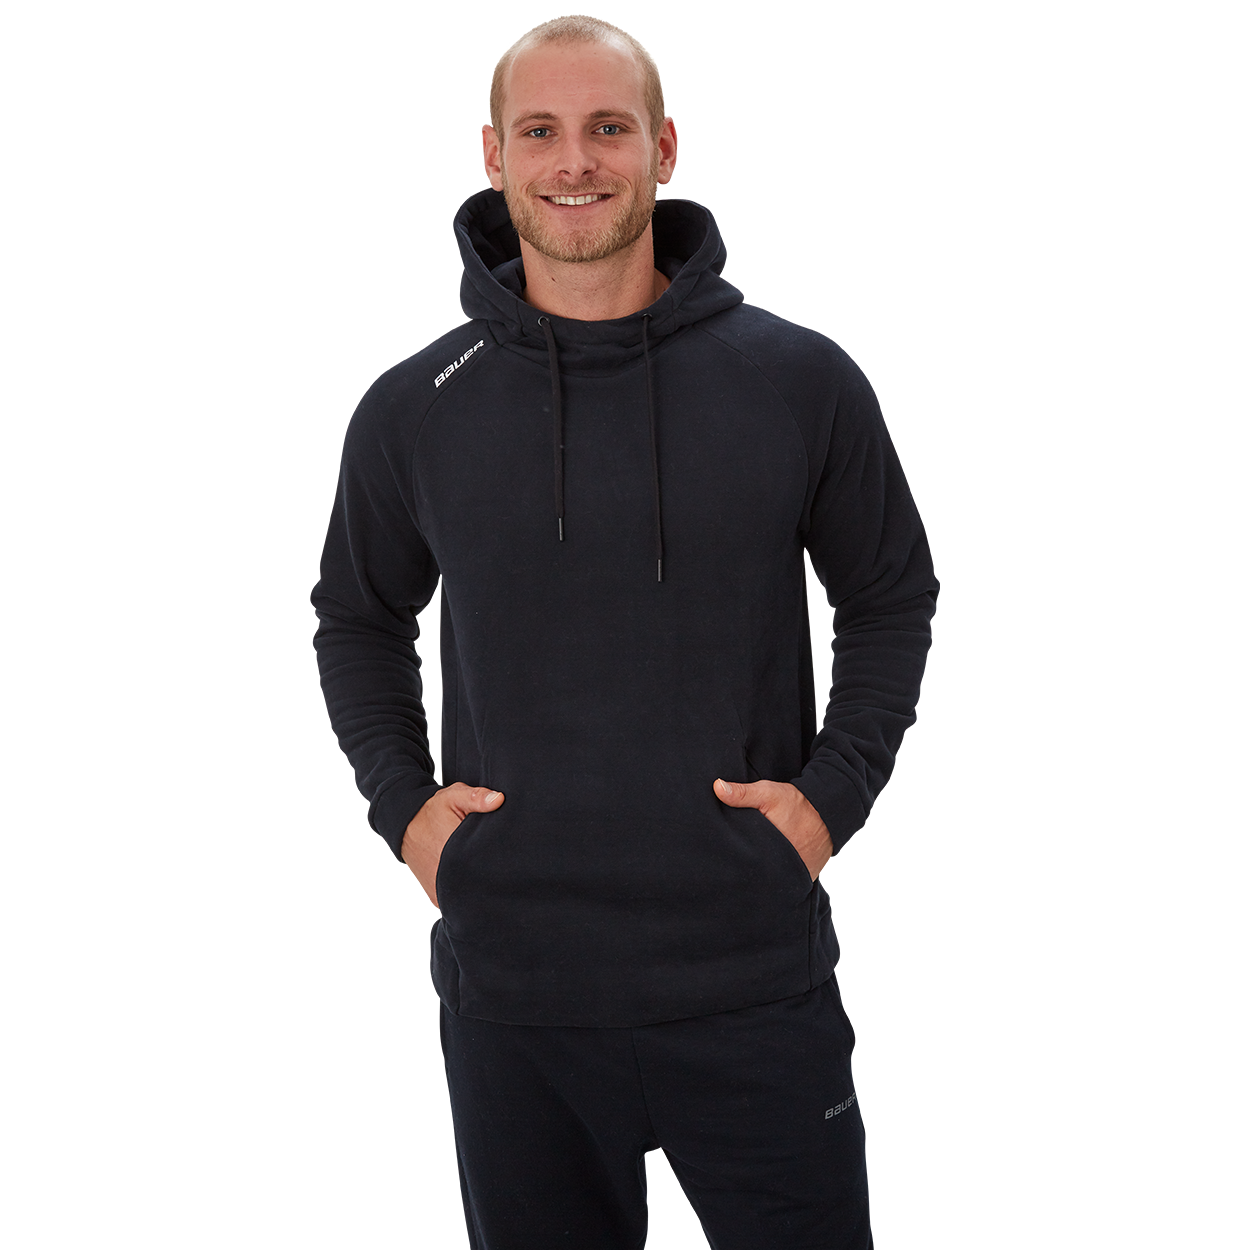 Bauer Perfect Hoodie,Schwarz,Medium